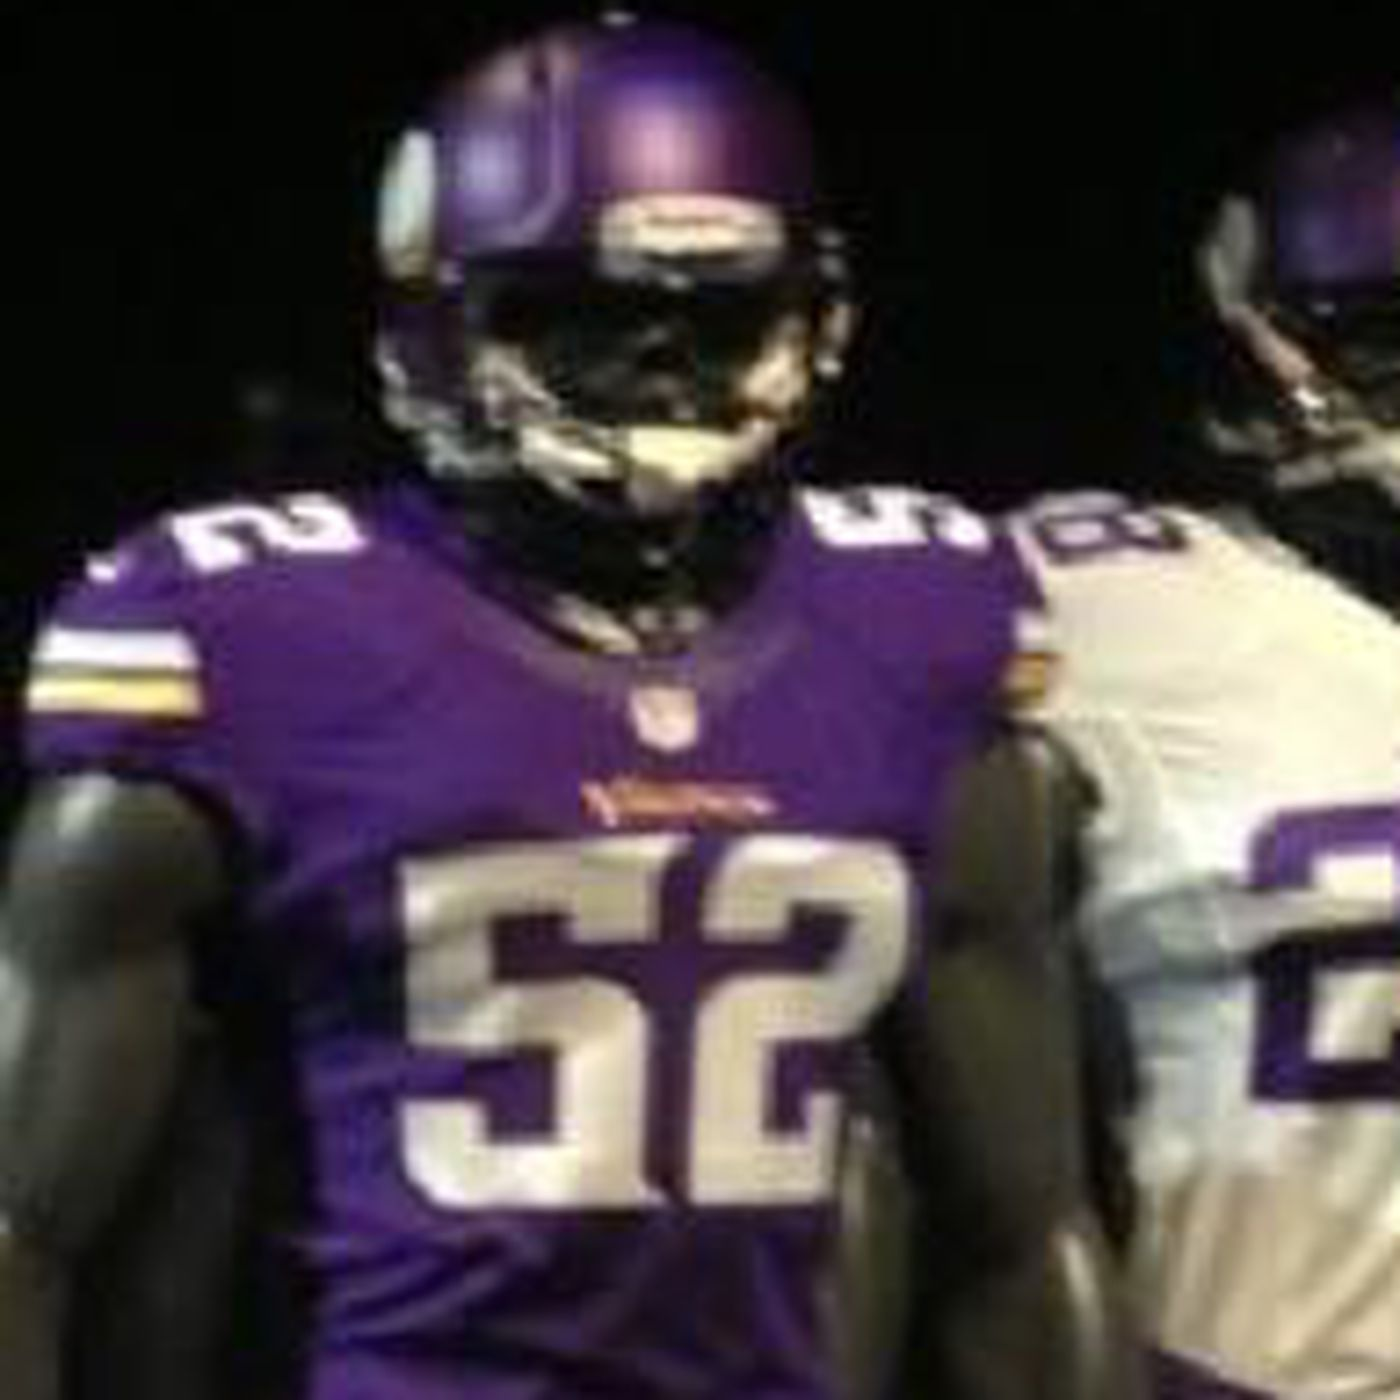 ad38f3a89a7 New Vikings 2013 Uniforms Leaked - Daily Norseman